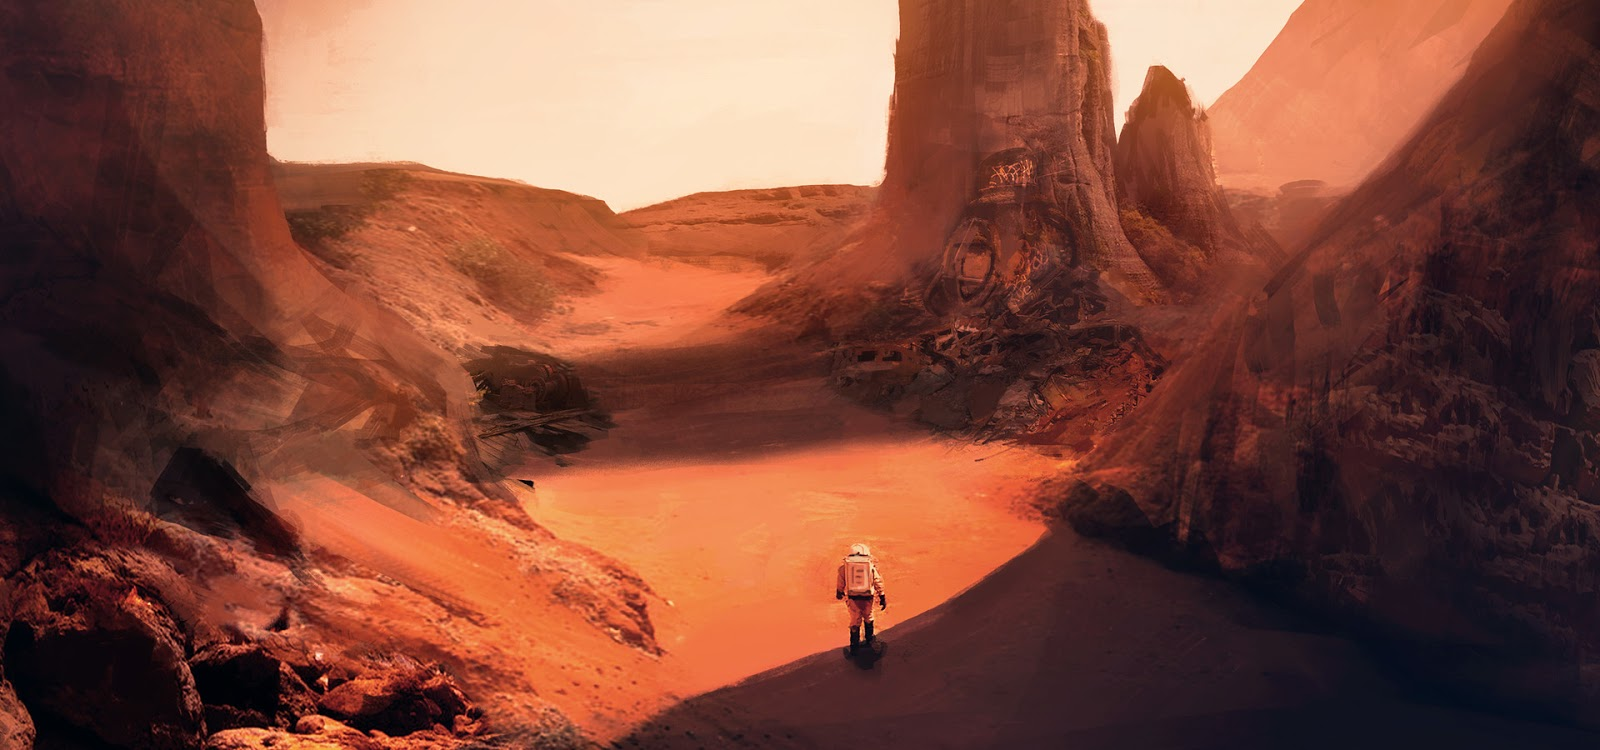 Martian Rust Valley by Pat Fix